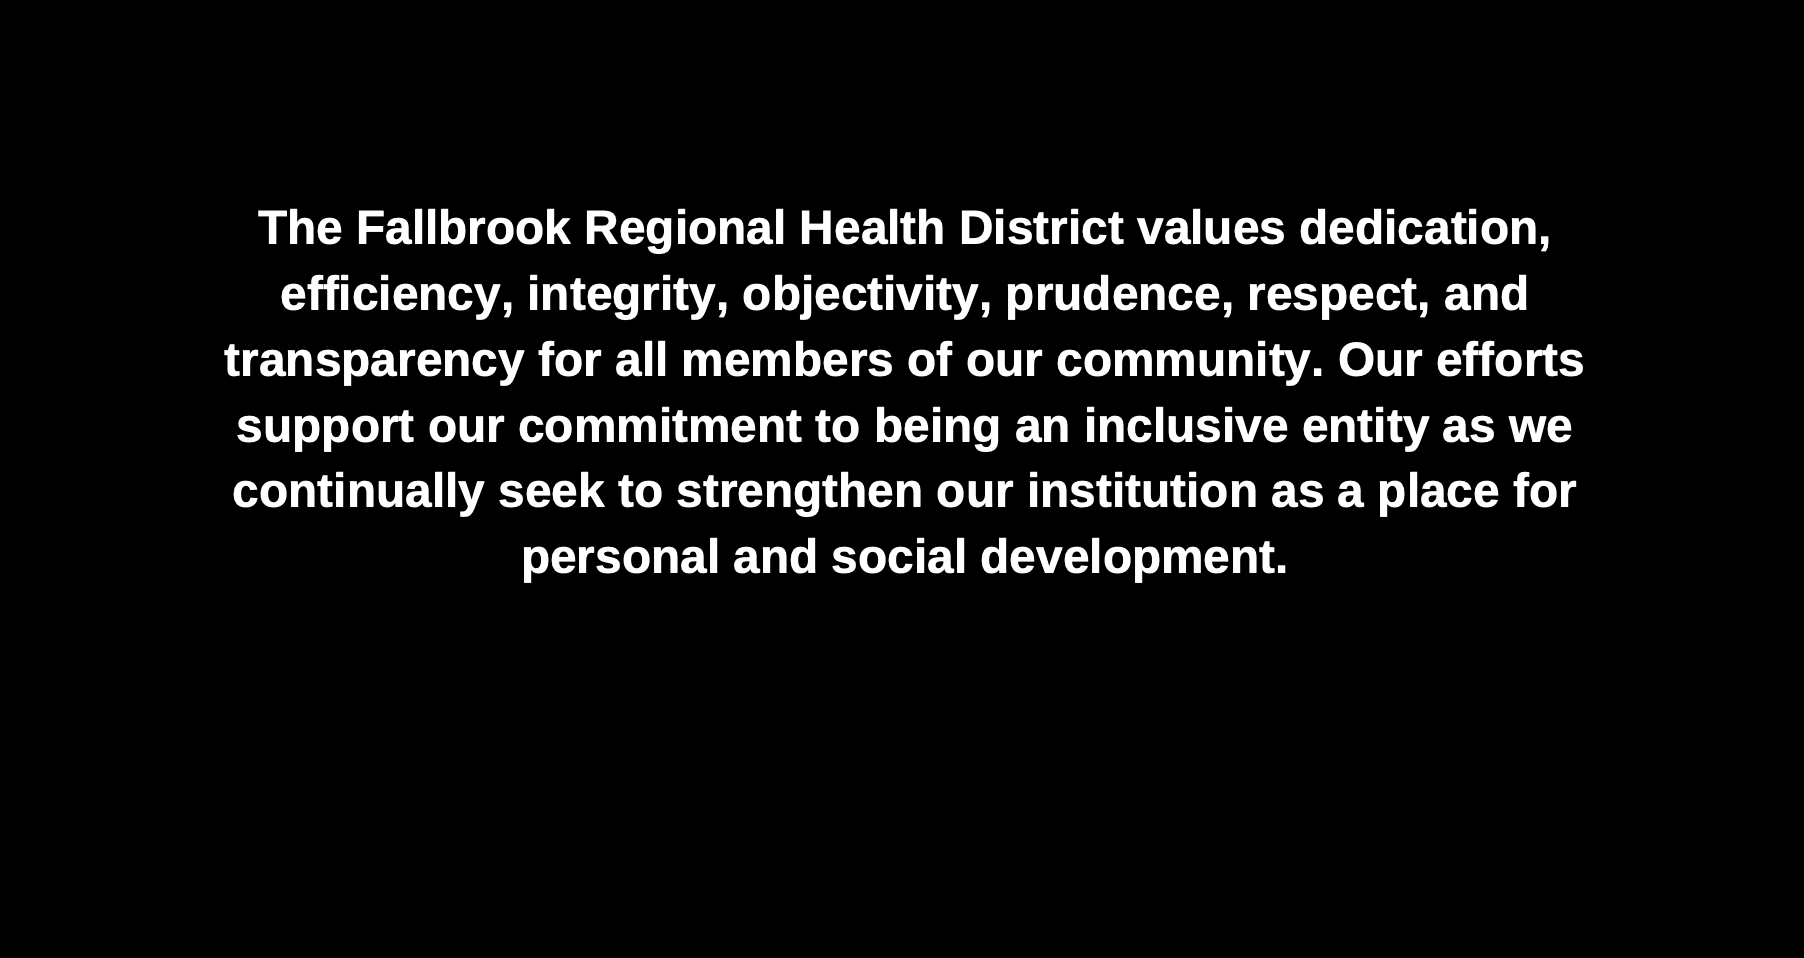 The Fallbrook Regional Health District values Dedication, Efficiency, Integrity, Objectivity, Prudence, Respect, and Transparency for all members of our community. Our efforts support our commitment to being an inclusive entity as we continually seek to strengthen our institution as a place for personal and social development